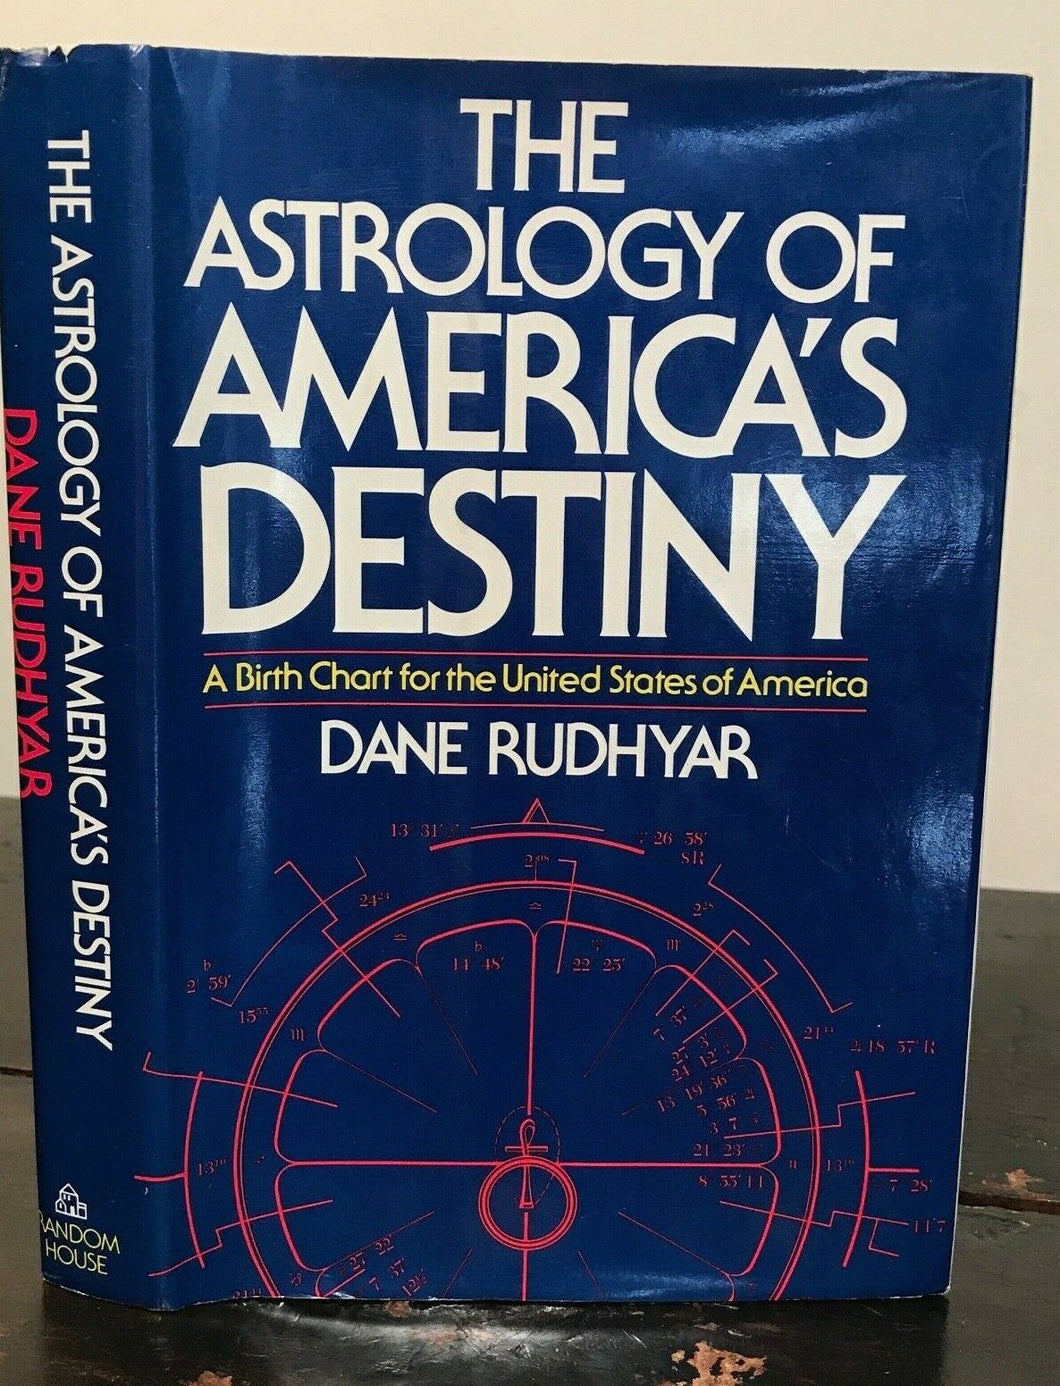 ASTROLOGY OF AMERICA'S DESTINY - Rudhyar, 1st 1974 SCARCE REVIEW COPY, 7 PHOTOS